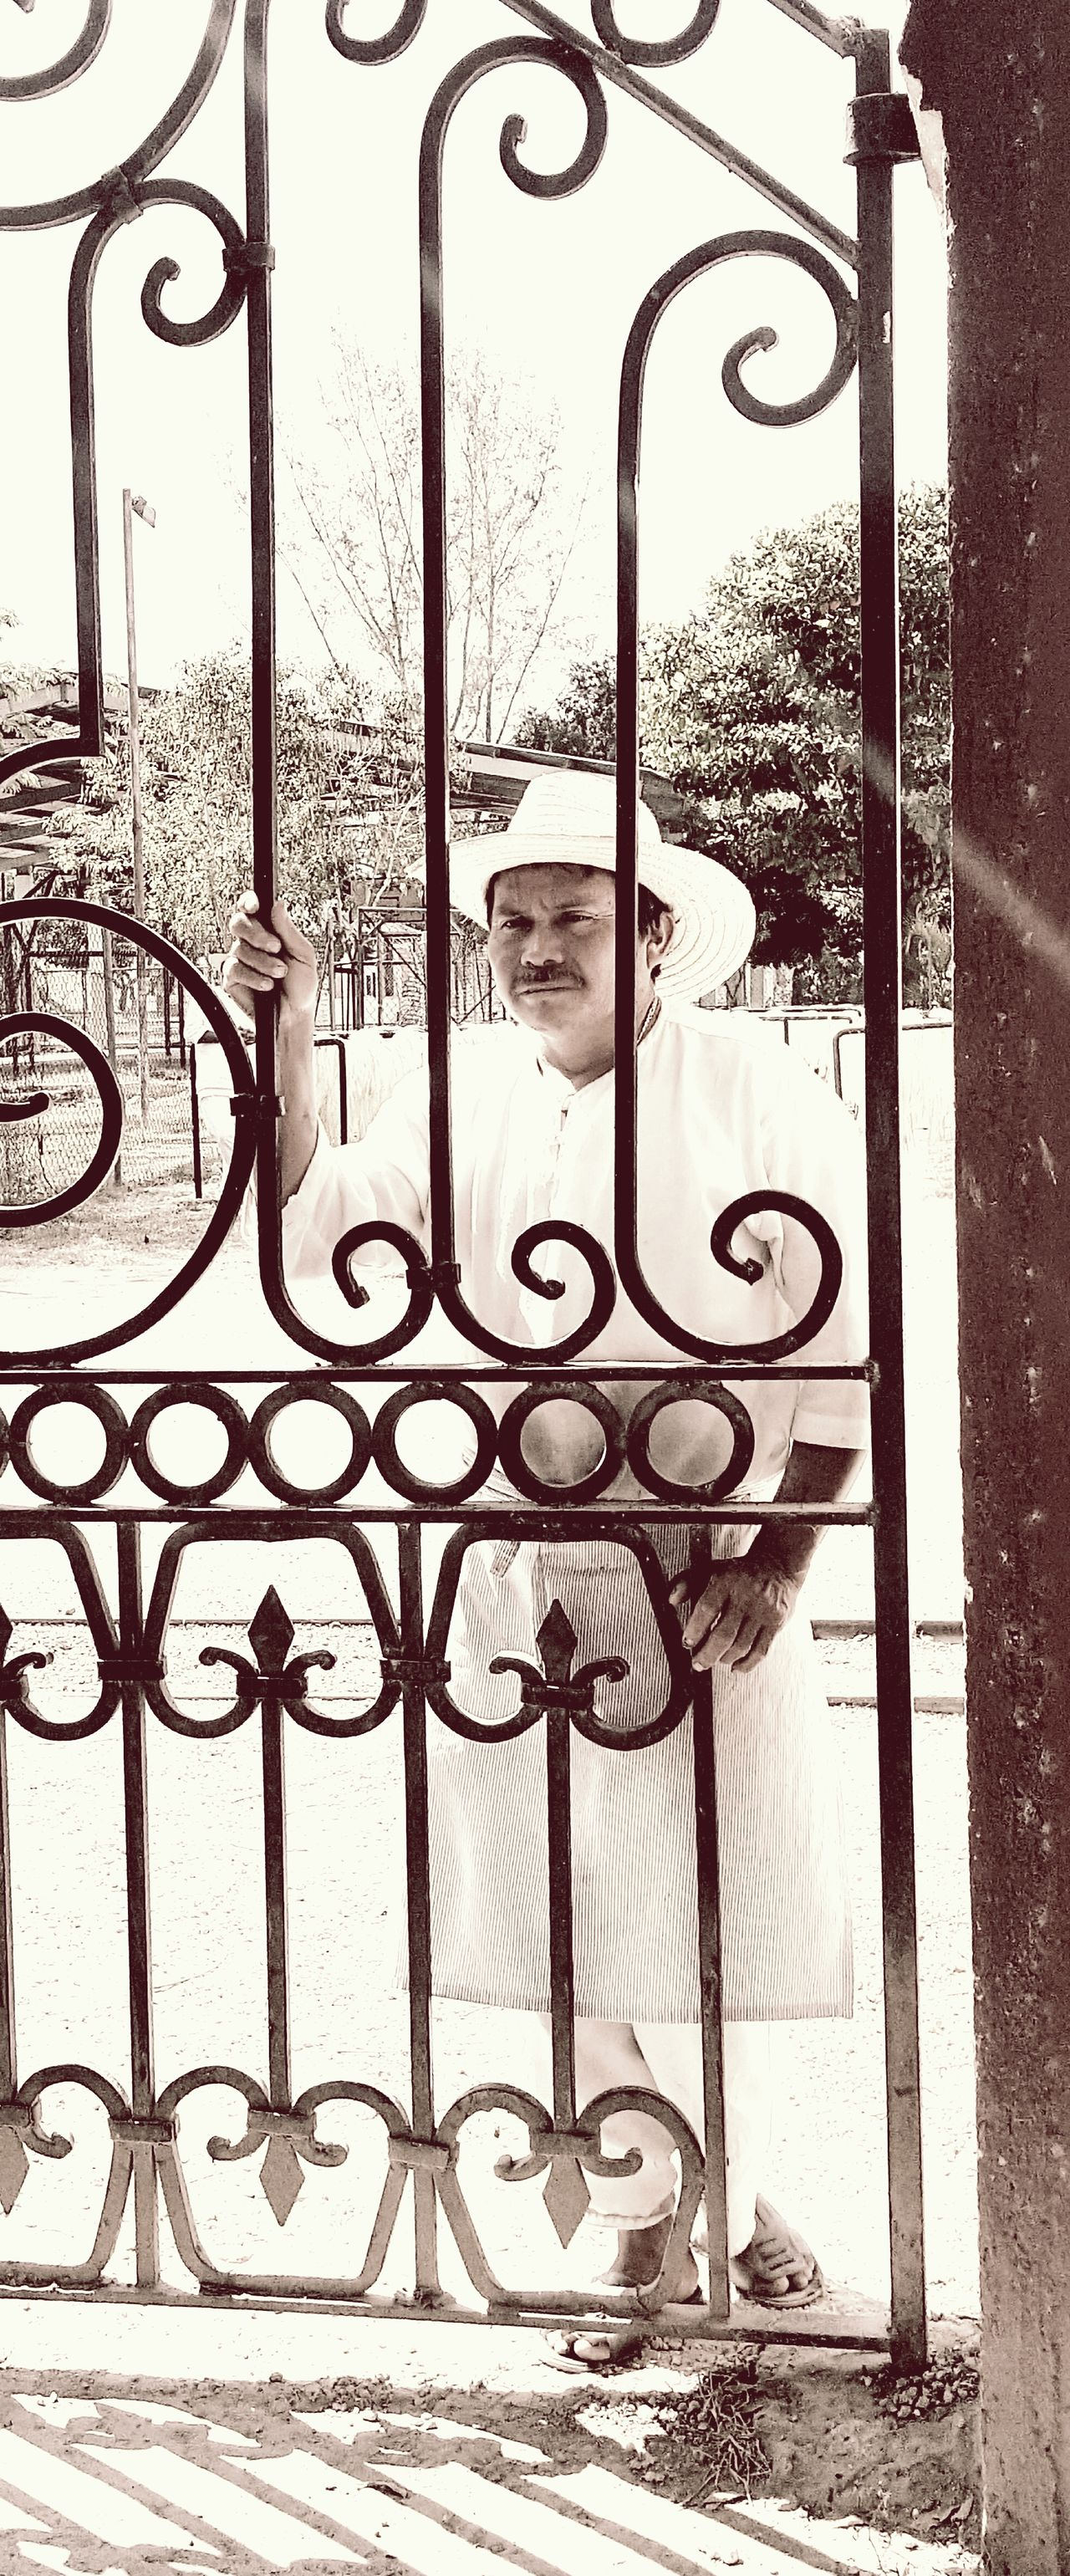 Day Iron Gate Metal Gate Mexican Far Mexican Man Mexican Peasan Mexican Work Old Mexico One Person Outdoors People Real People Sepia Photography